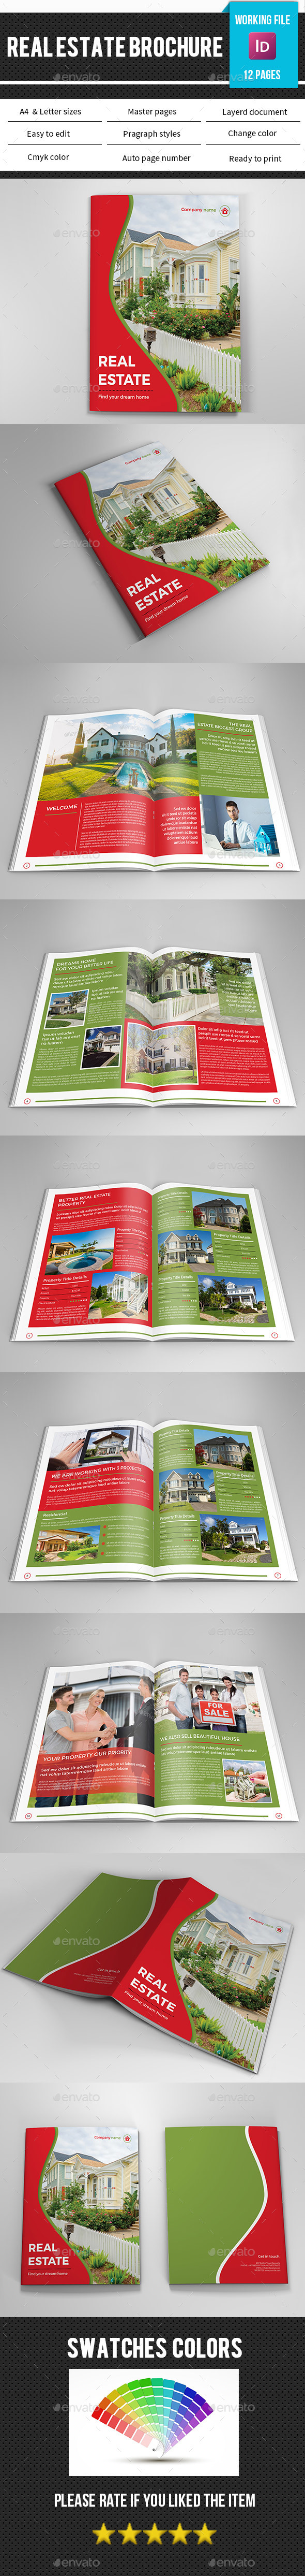 Real Estate Brochure Template-V328 - Corporate Brochures